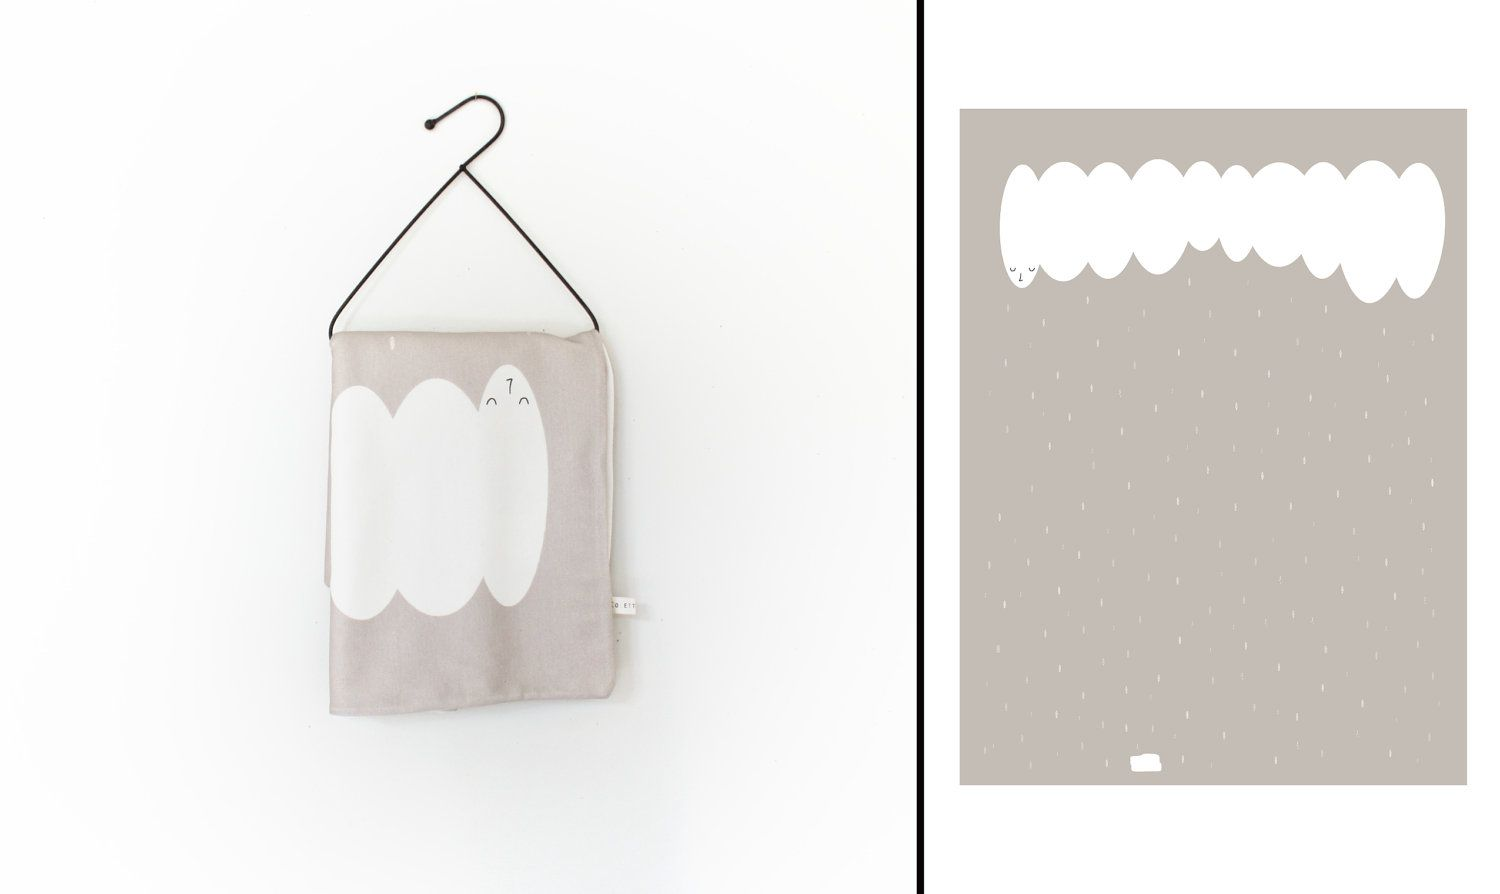 ORGANIC Blanket - 'Will there be puddles' blanket by Colette Bream